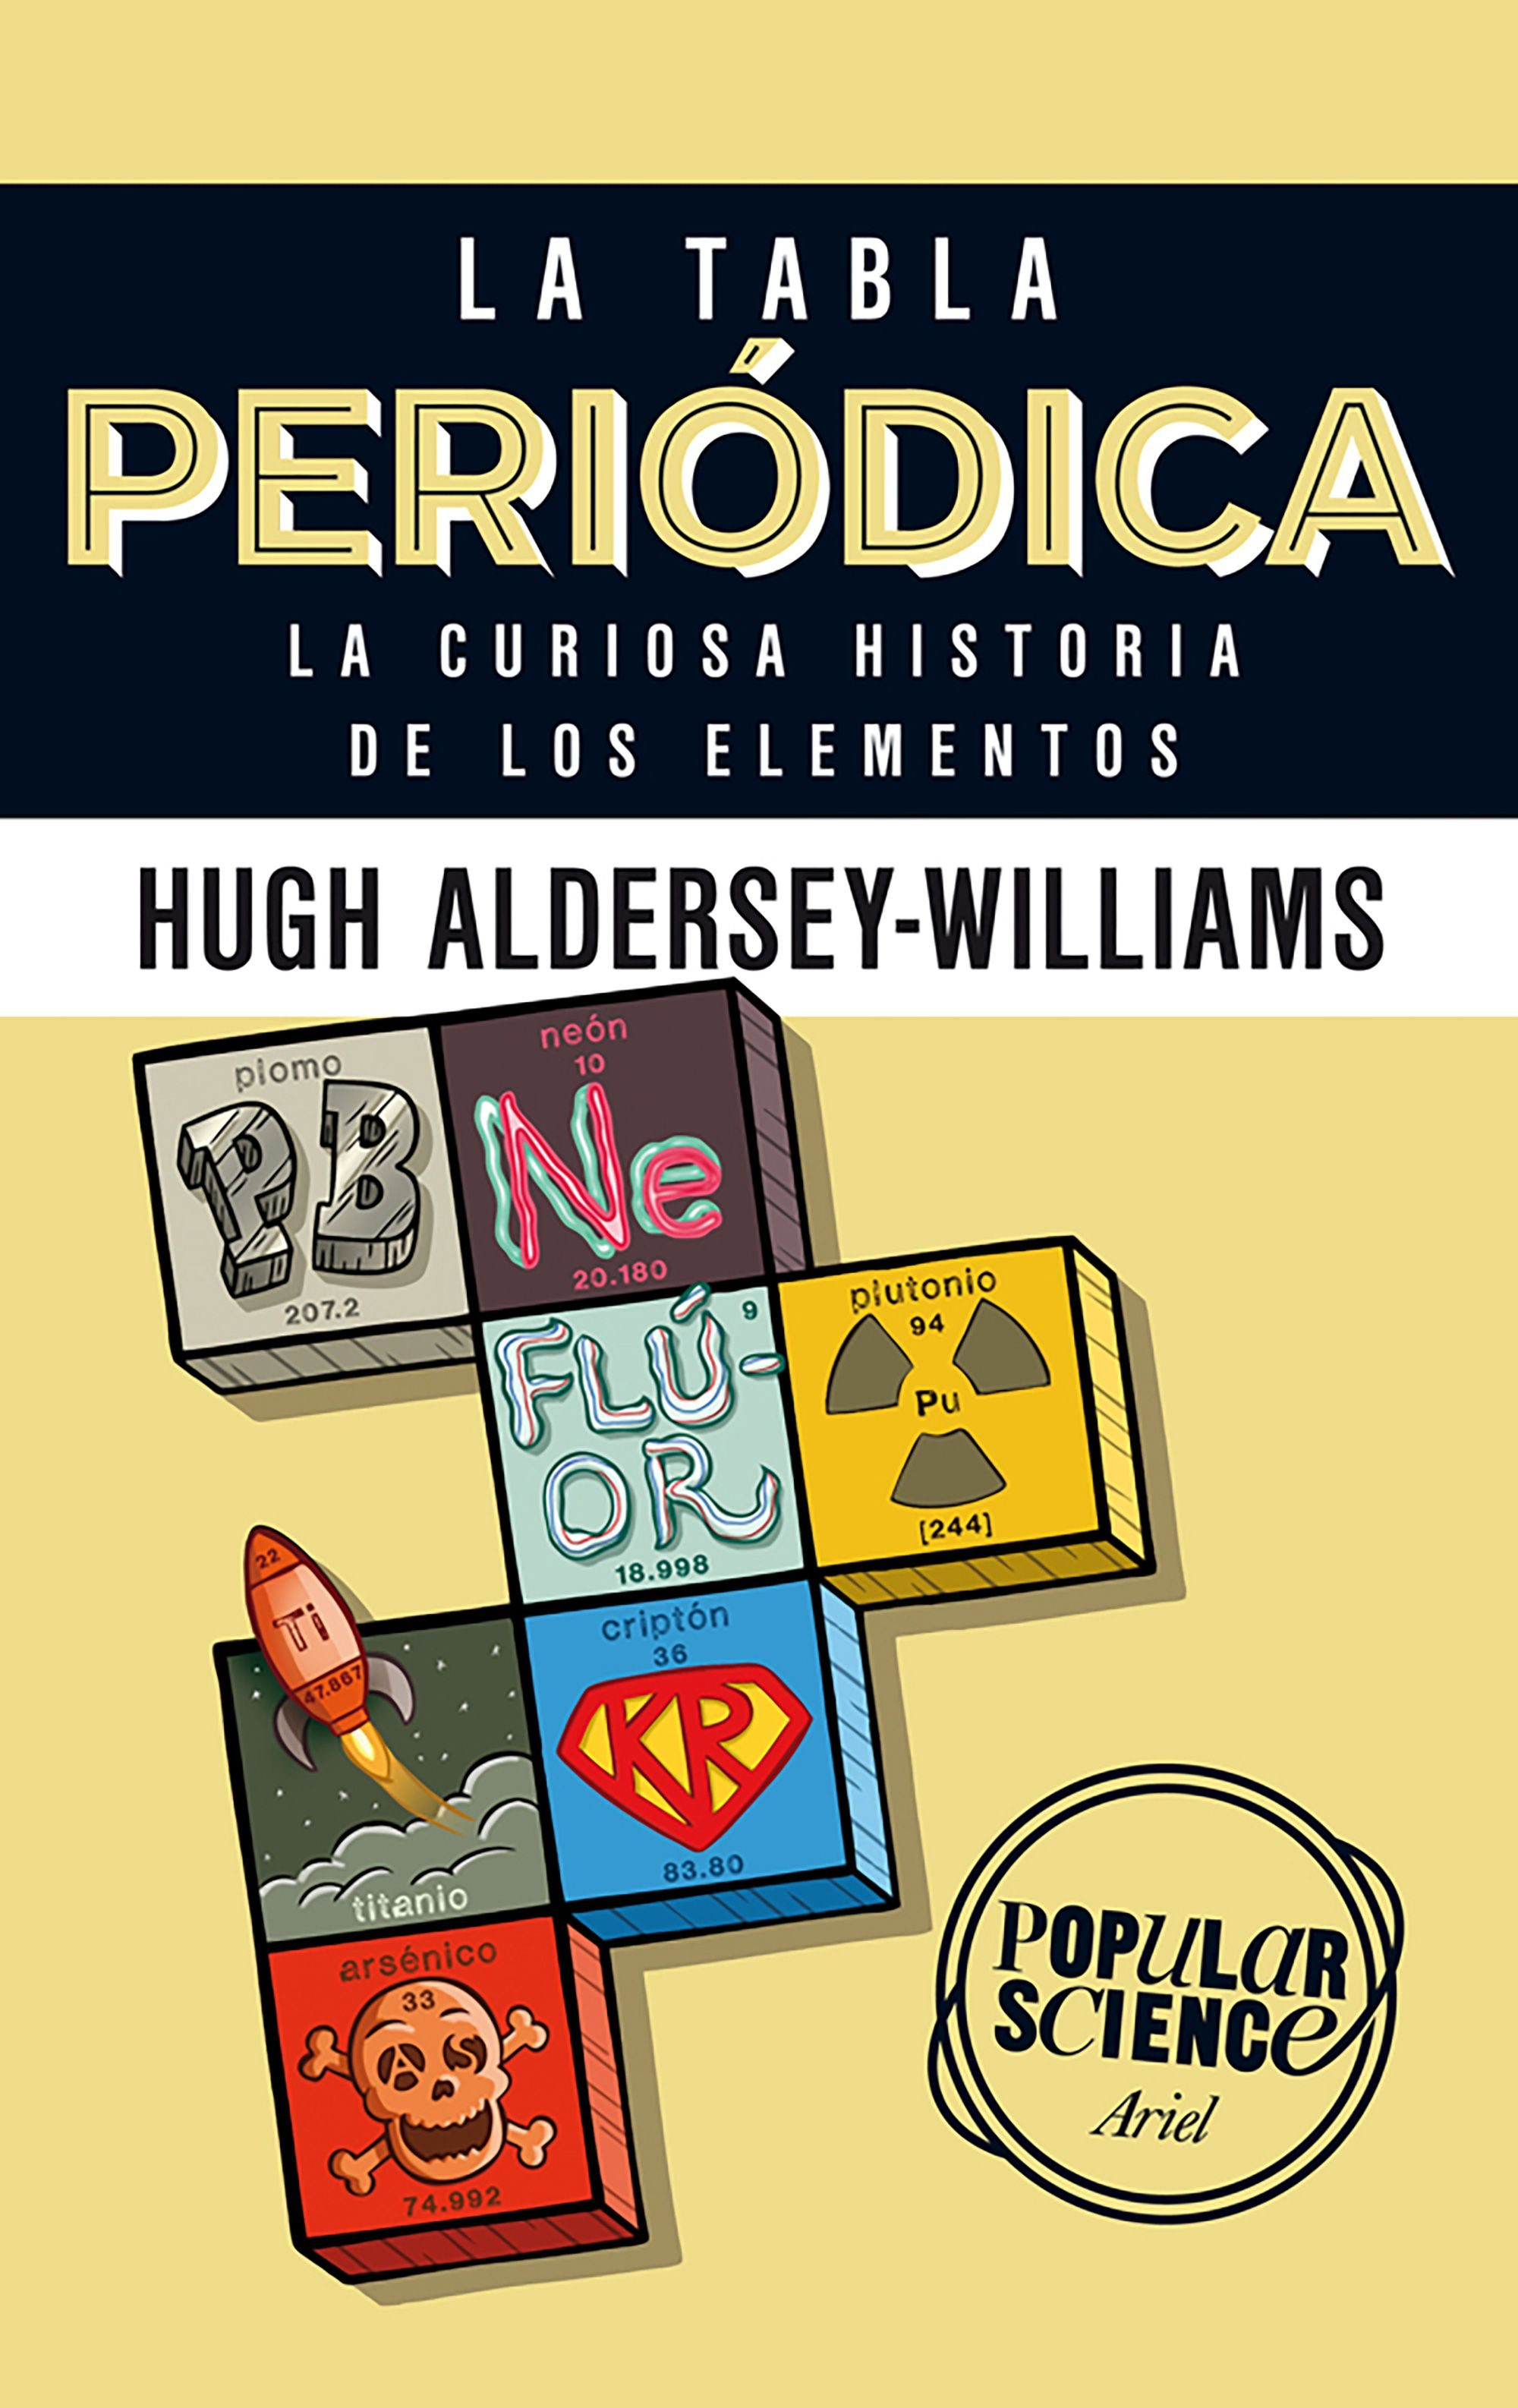 La tabla periodica hugh aldersey williams comprar libro la tabla periodica hugh aldersey williams 9788434422520 urtaz